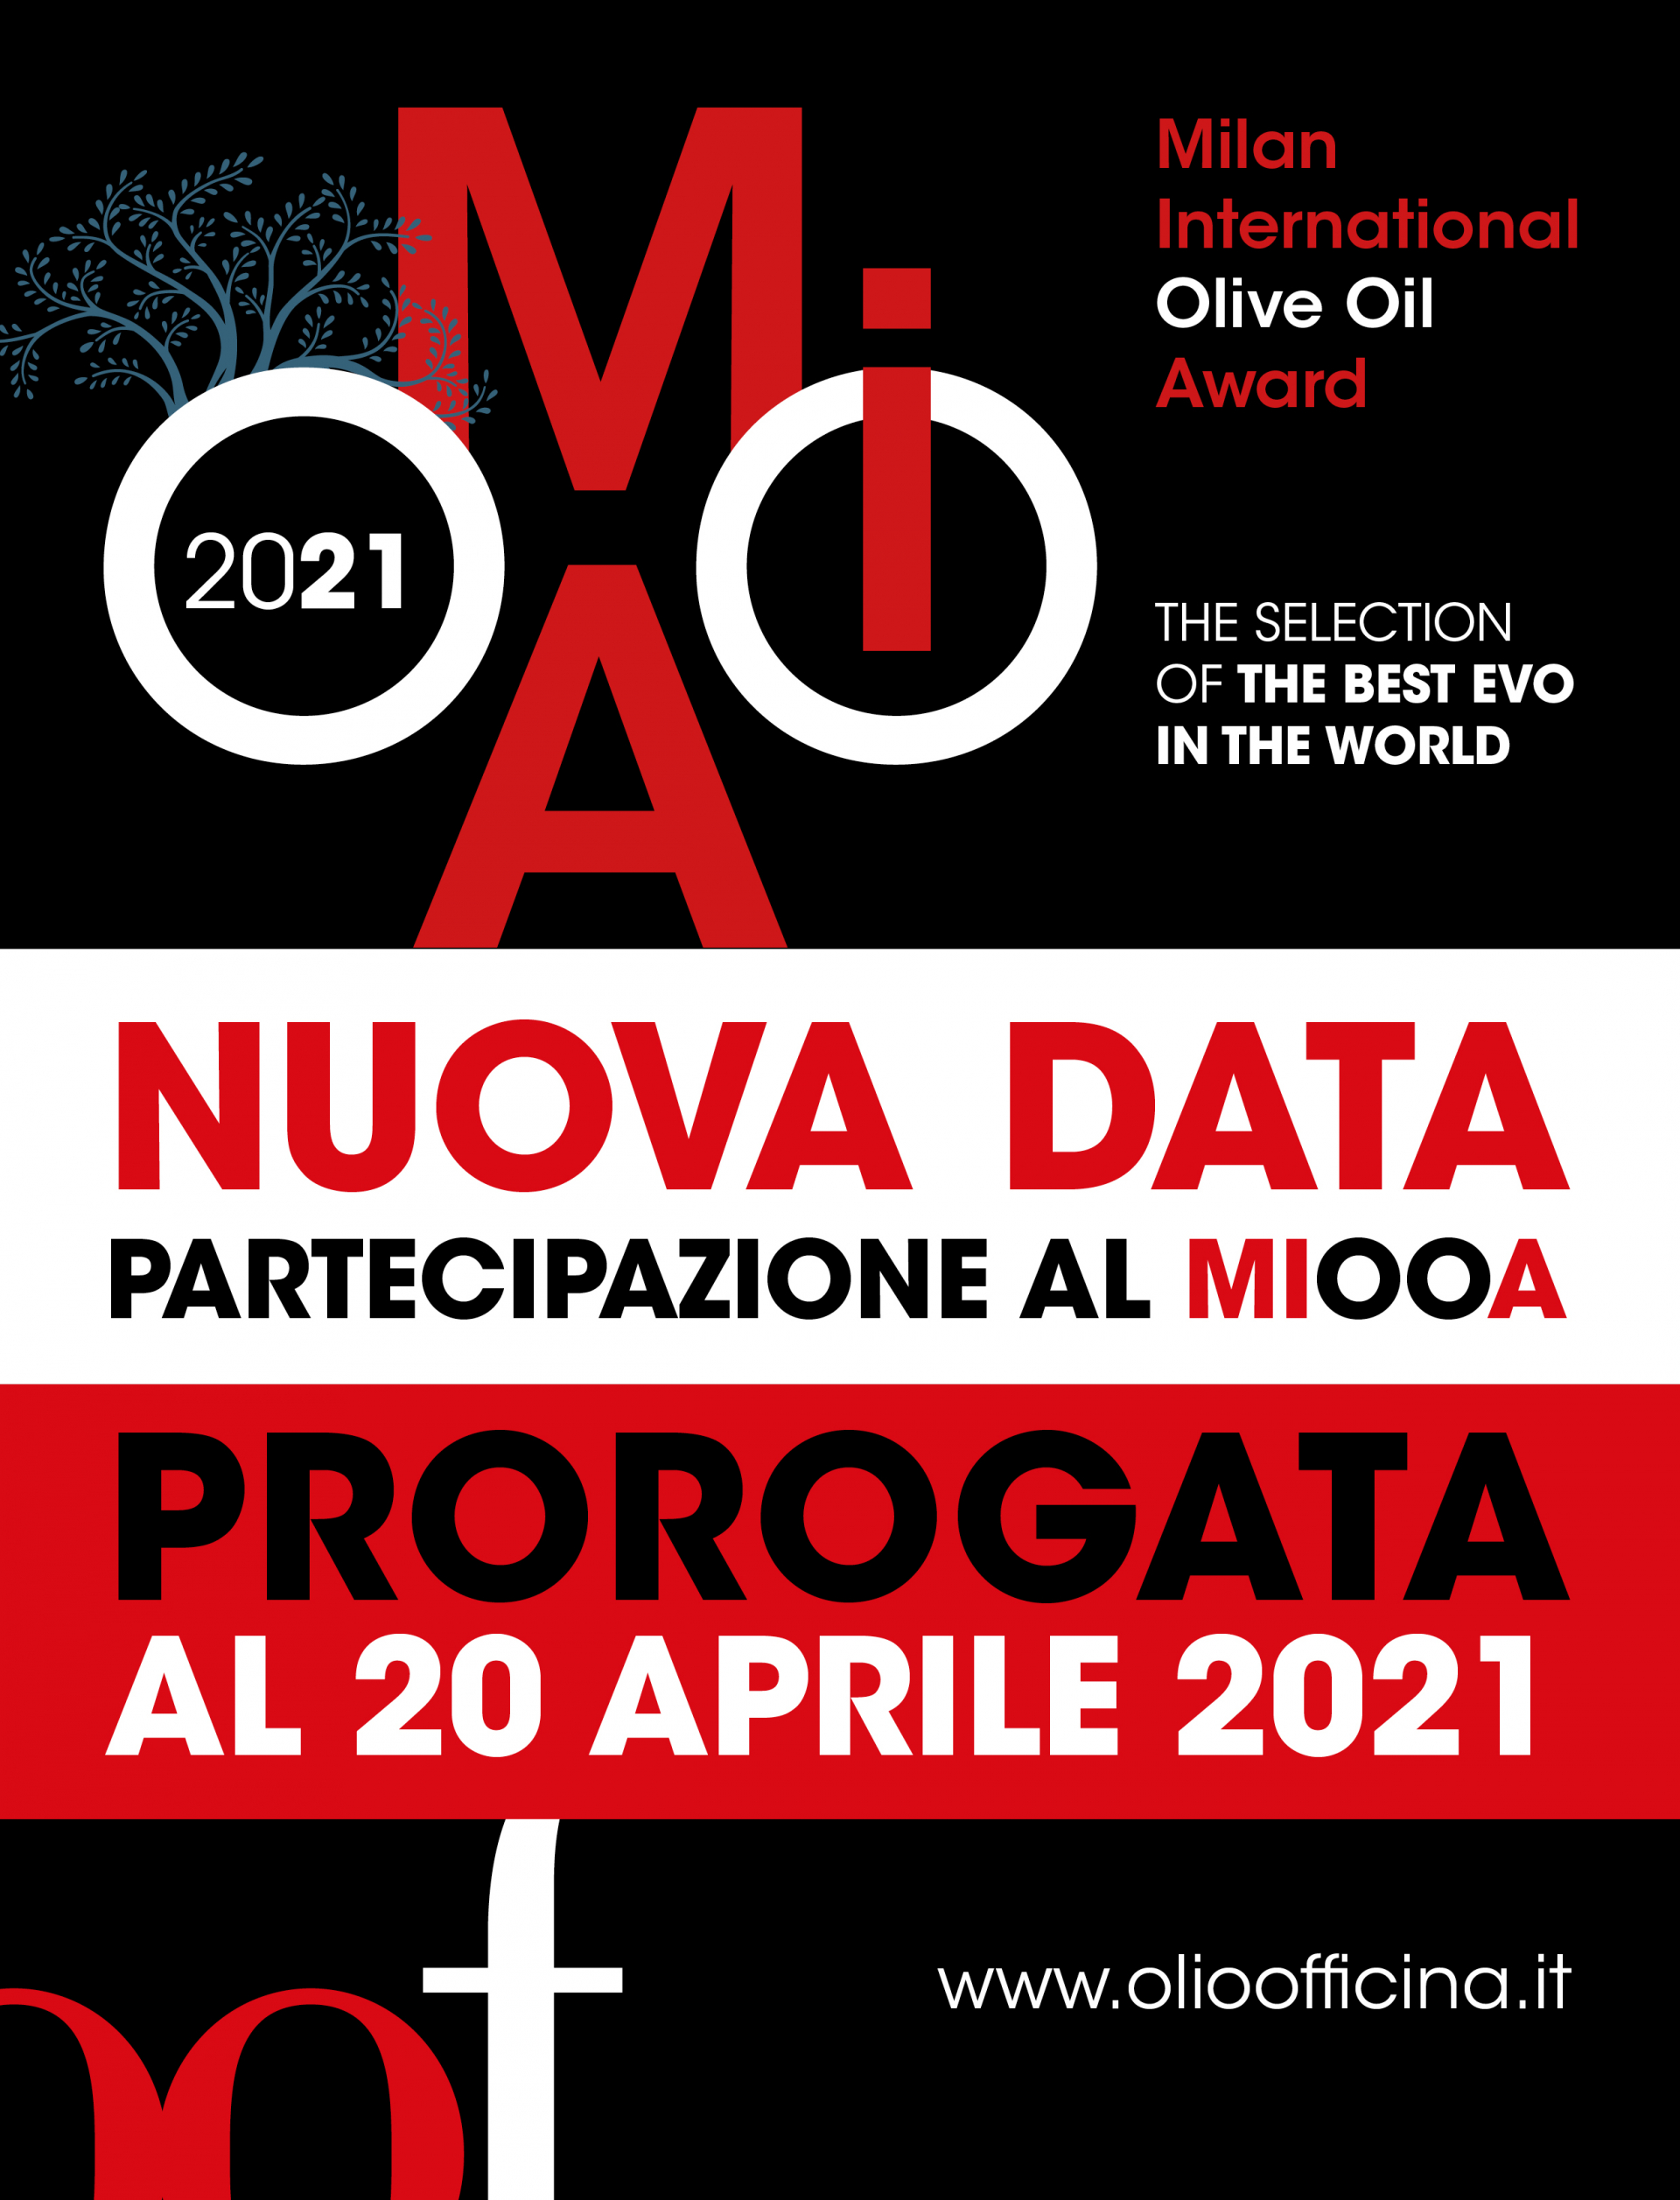 Ultimissimi giorni per partecipare al Milan International Olive Oil Award